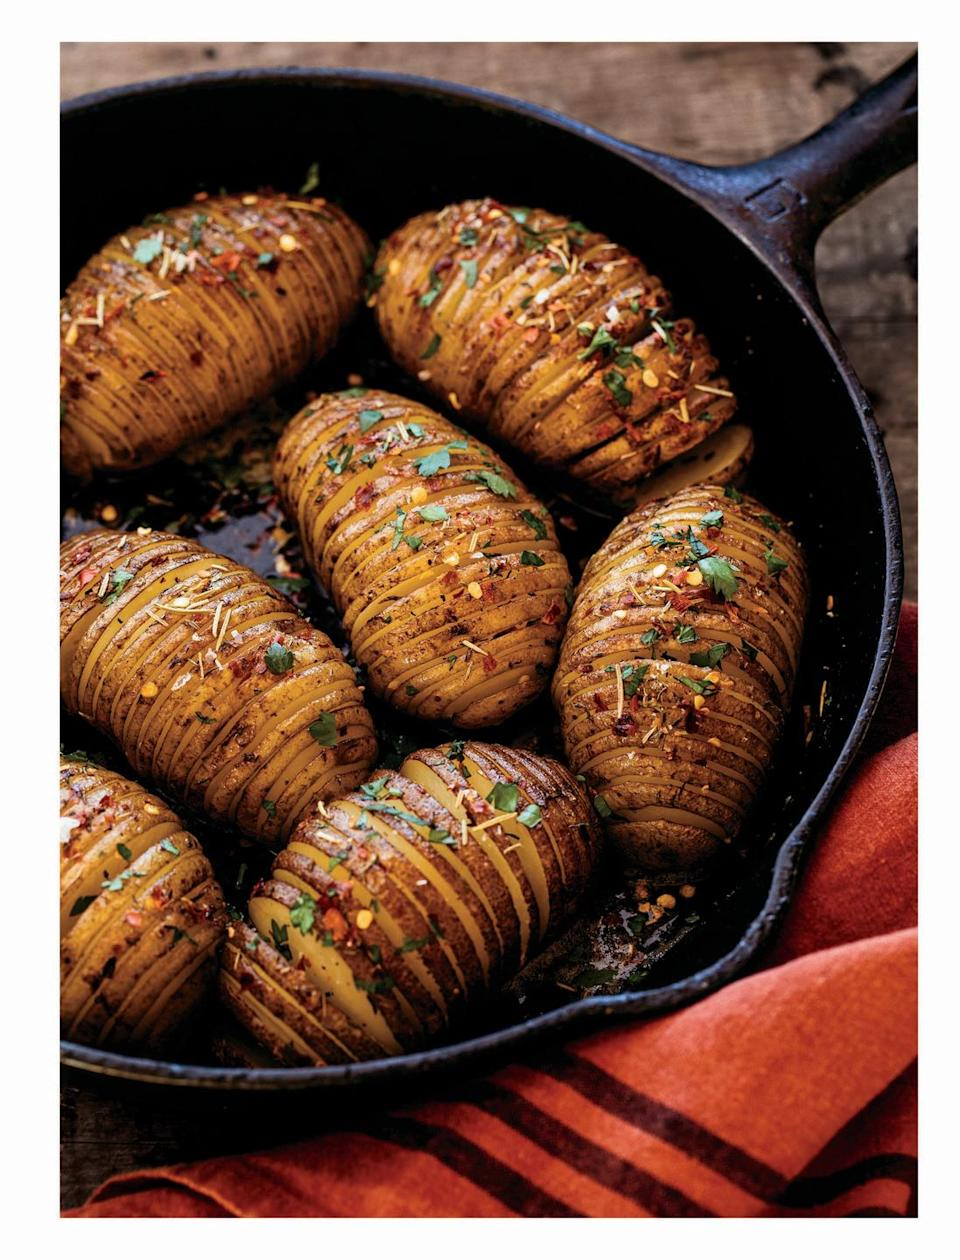 "<p>Slip these amazing-looking potatoes onto everyone's plates and your guests will be impressed first by how good they look, and second by how good they taste. But they're not difficult to make.</p><p><strong><a href=""https://www.countryliving.com/food-drinks/a34277029/cast-iron-hasselback-potatoes/"" rel=""nofollow noopener"" target=""_blank"" data-ylk=""slk:Get the recipe"" class=""link rapid-noclick-resp"">Get the recipe</a>.</strong></p><p><a class=""link rapid-noclick-resp"" href=""https://www.amazon.com/Victoria-Skillet-Seasoned-Flaxseed-Certified/dp/B01726HD72/?tag=syn-yahoo-20&ascsubtag=%5Bartid%7C10050.g.1078%5Bsrc%7Cyahoo-us"" rel=""nofollow noopener"" target=""_blank"" data-ylk=""slk:SHOP CAST IRON PANS"">SHOP CAST IRON PANS</a></p>"